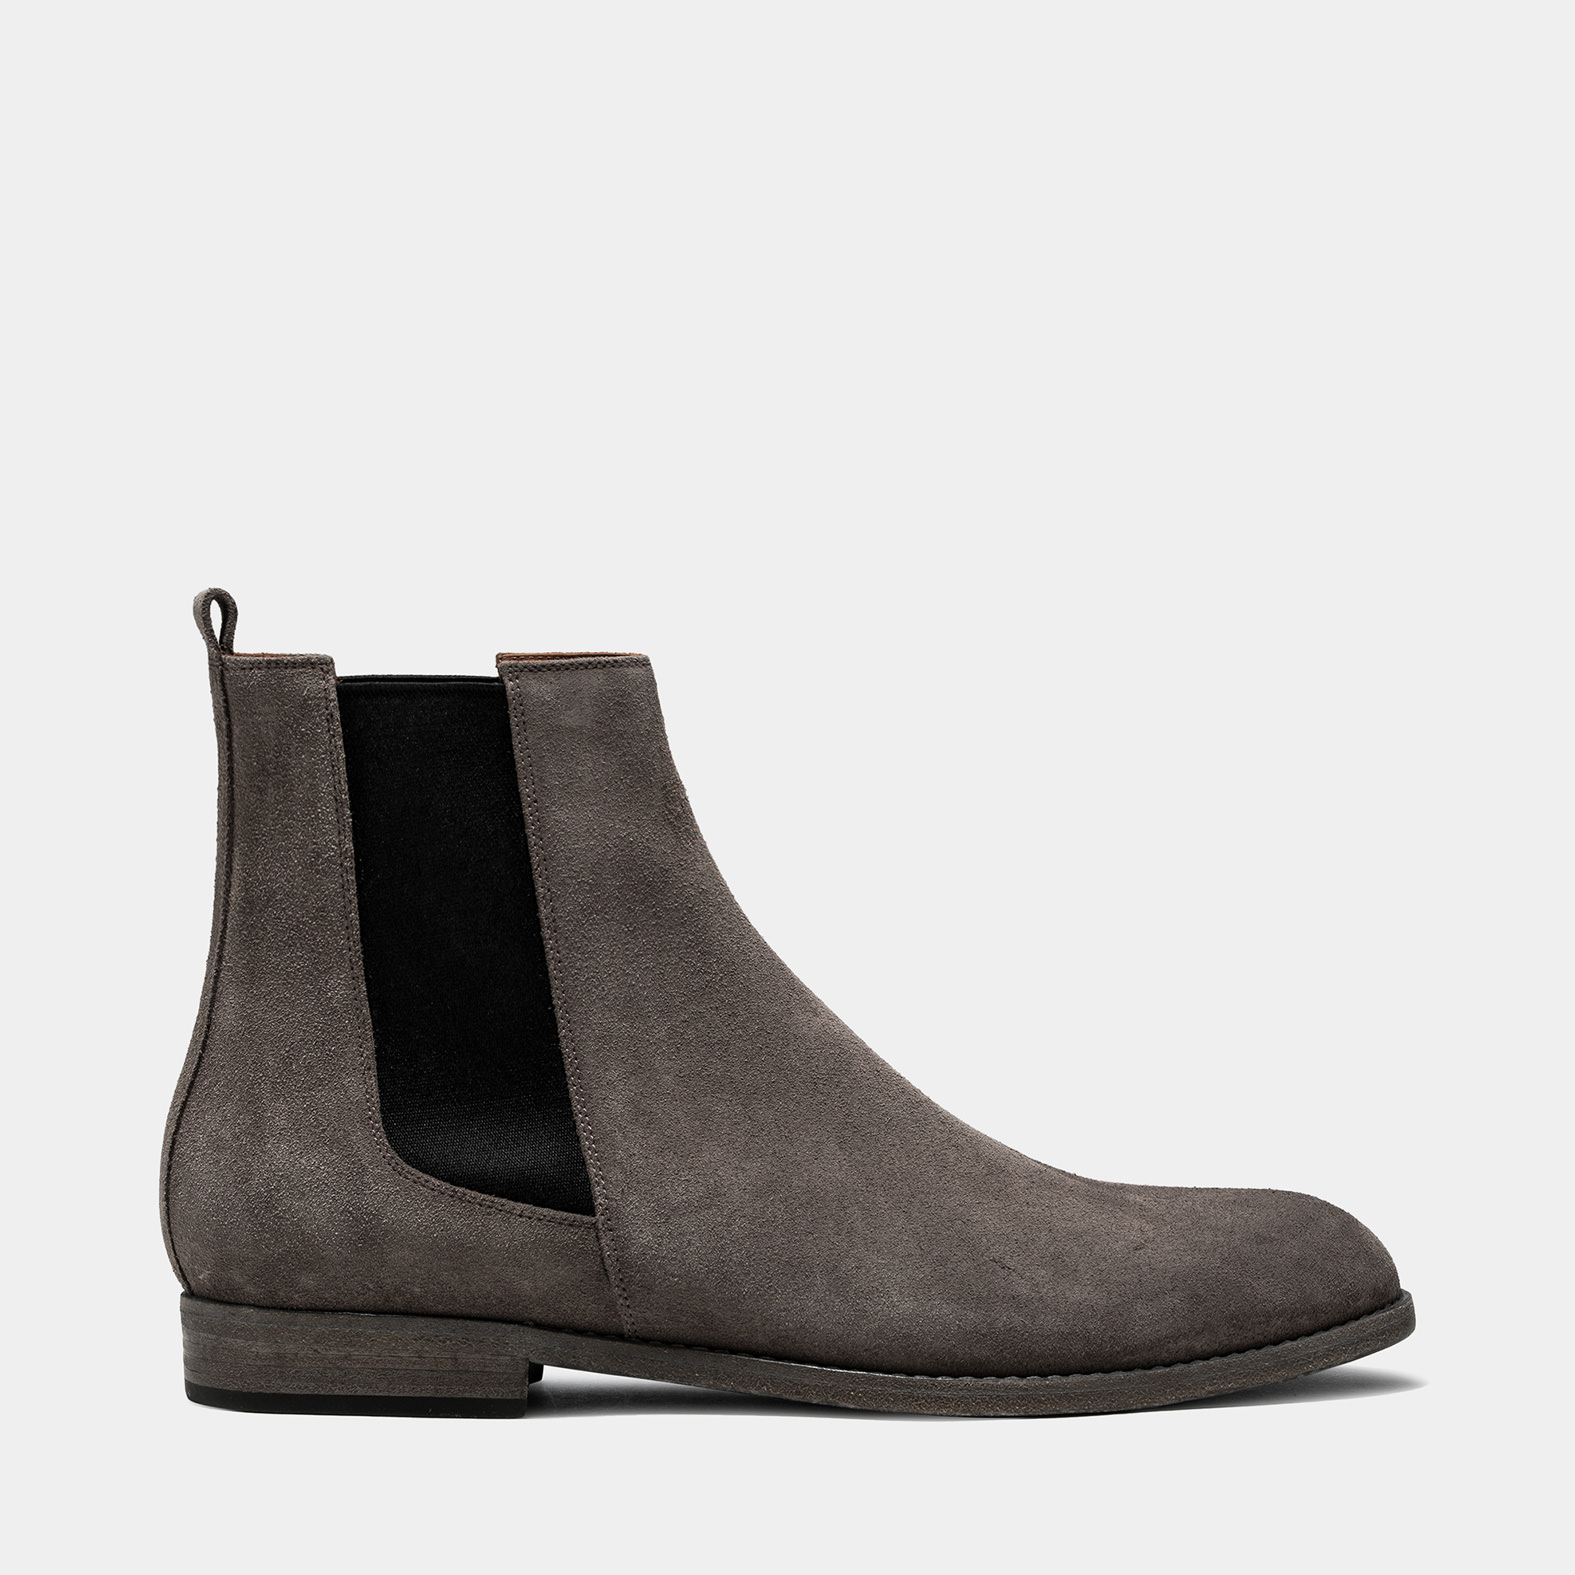 BUTTERO: FLOYD ANKLE BOOTS IN TAUPE GRAY SUEDE